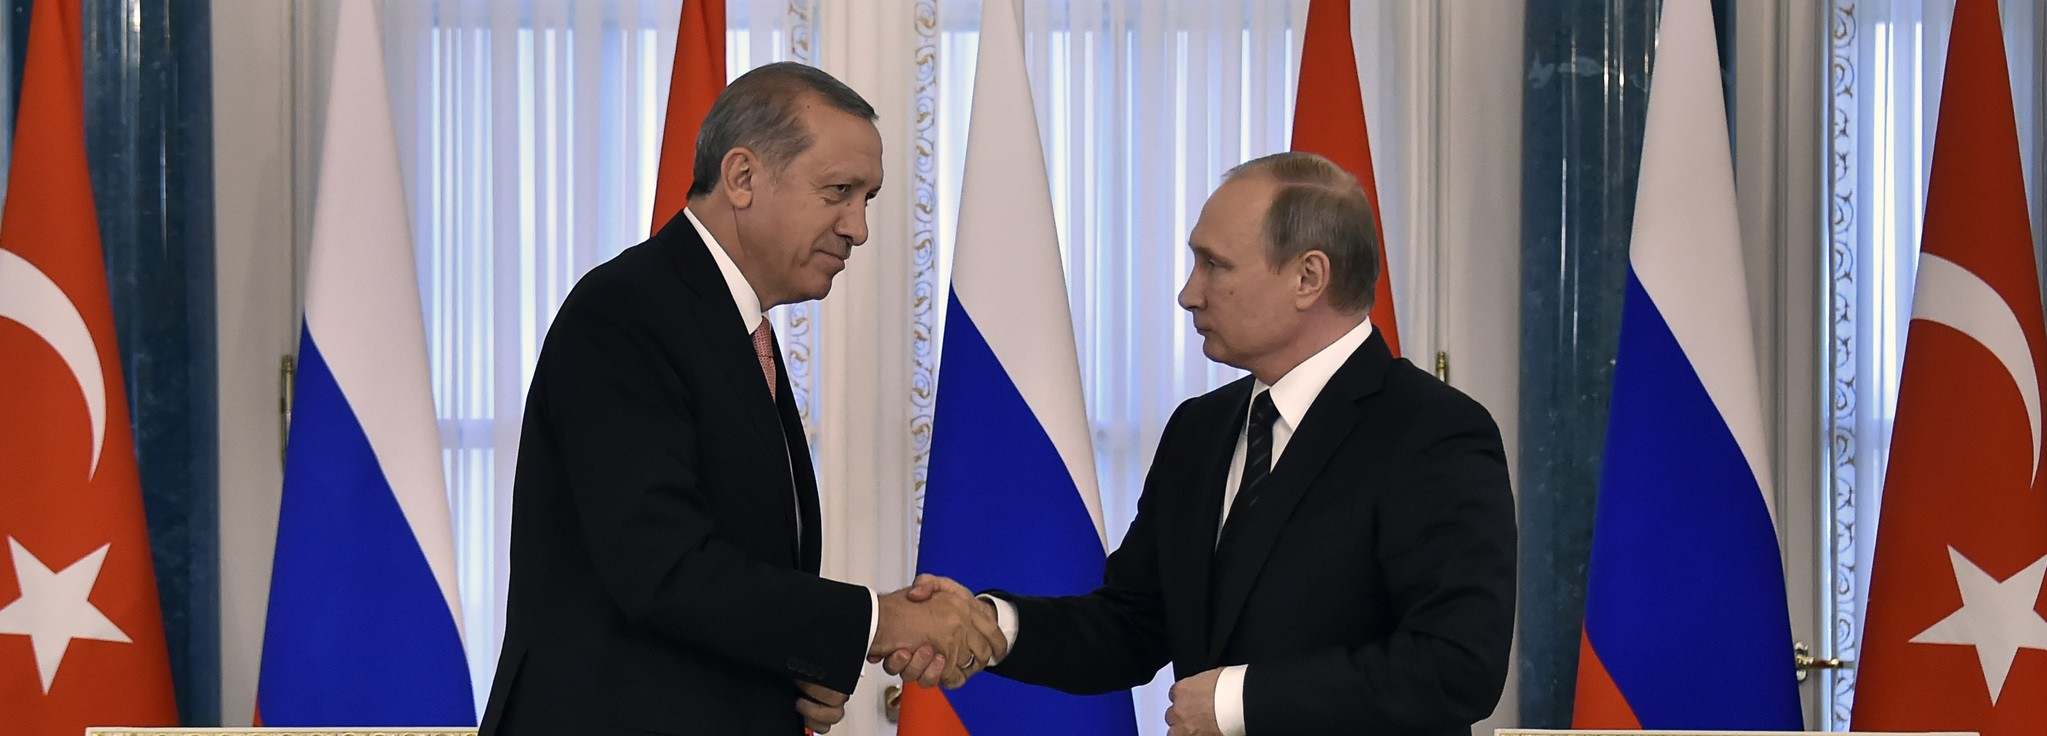 Russian President Vladimir Putin (R) shakes hands with his Turkish counterpart Recep Tayyip Erdou011fan during their press conference in Konstantinovsky Palace. (AFP Photo)